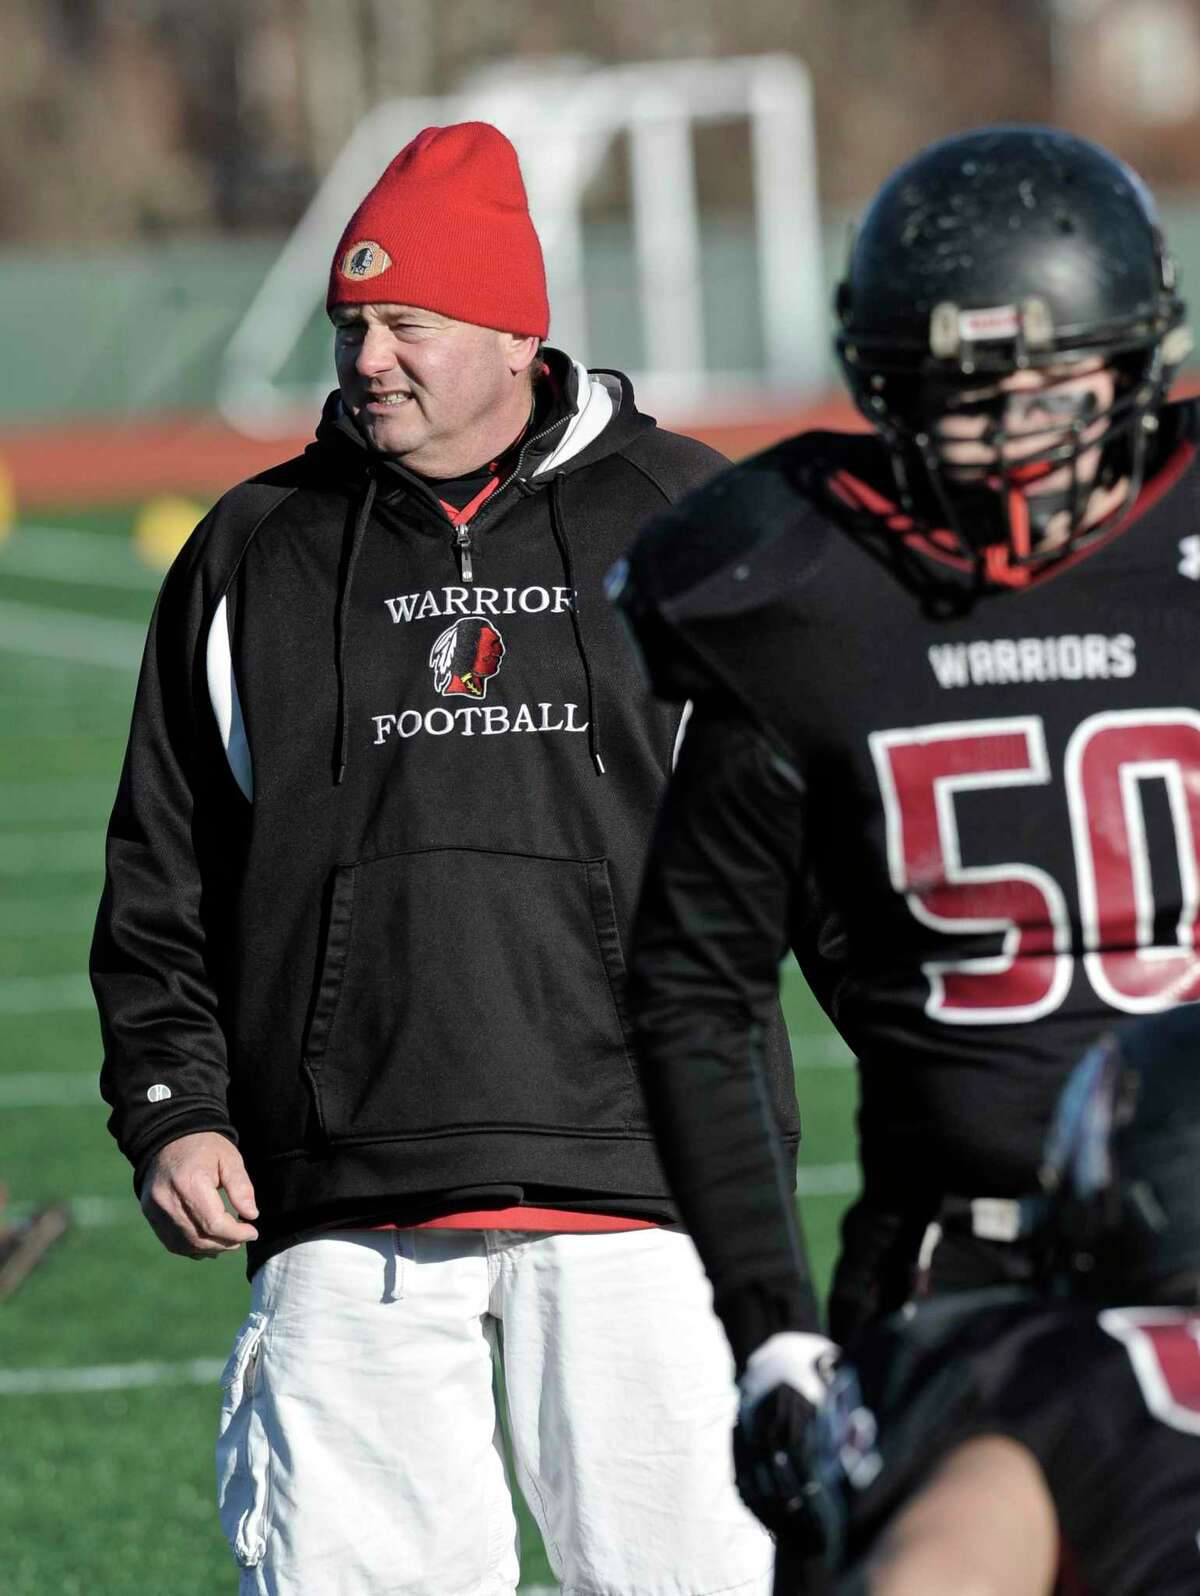 Valley Regional's head coach Tim King watches his team warmup before the Connecticut Class S Large state football championship game between Valley Regional/Old Lyme and Ansonia high schools, on Saturday, December 13, 2014, played at Veterans memorial Stadium, in New Britain, Conn.